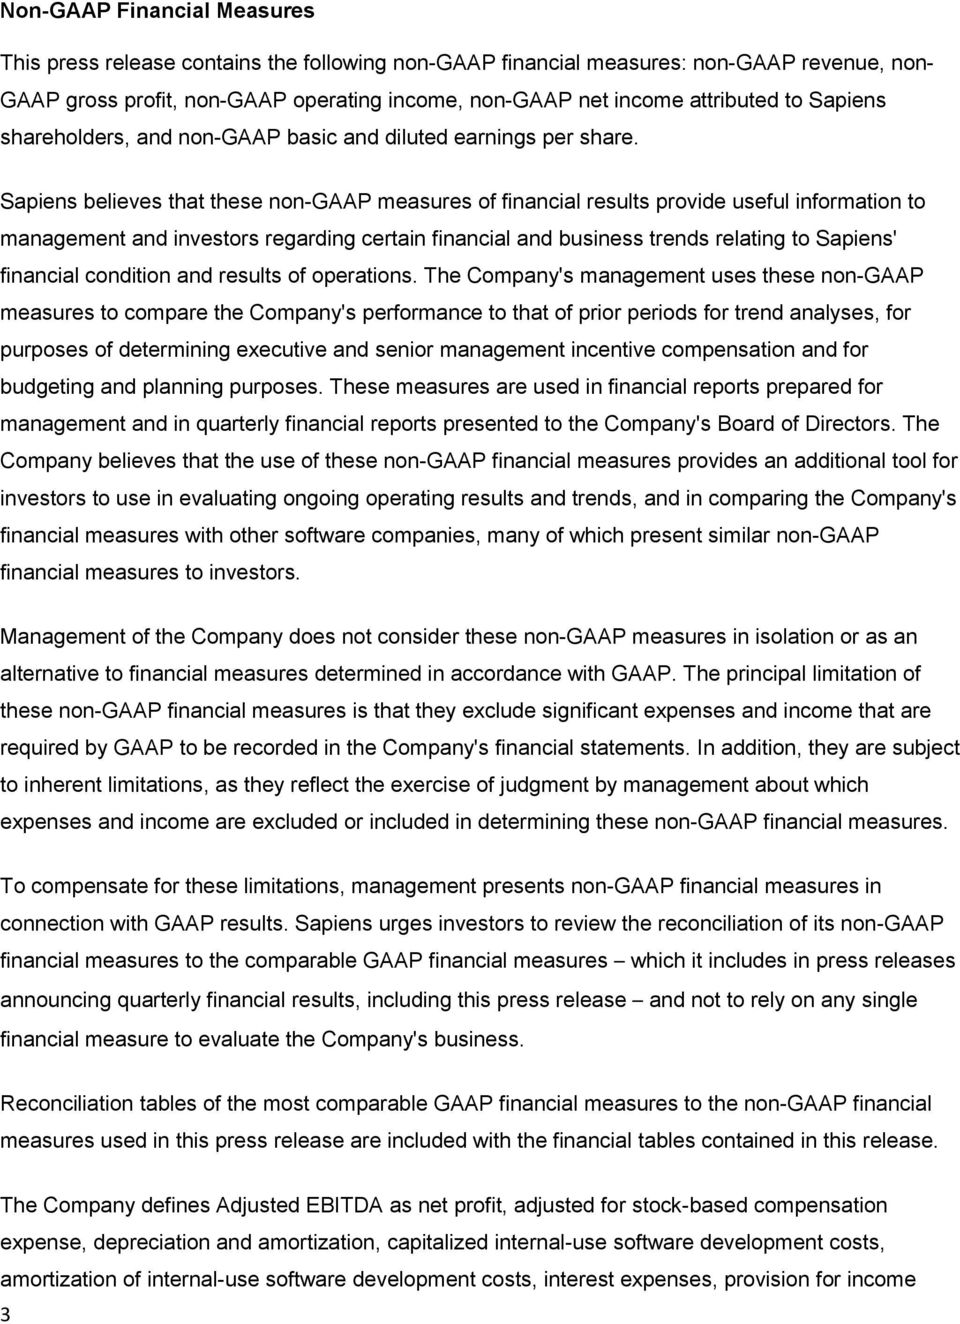 Sapiens believes that these non-gaap measures of financial results provide useful information to management and investors regarding certain financial and business trends relating to Sapiens'